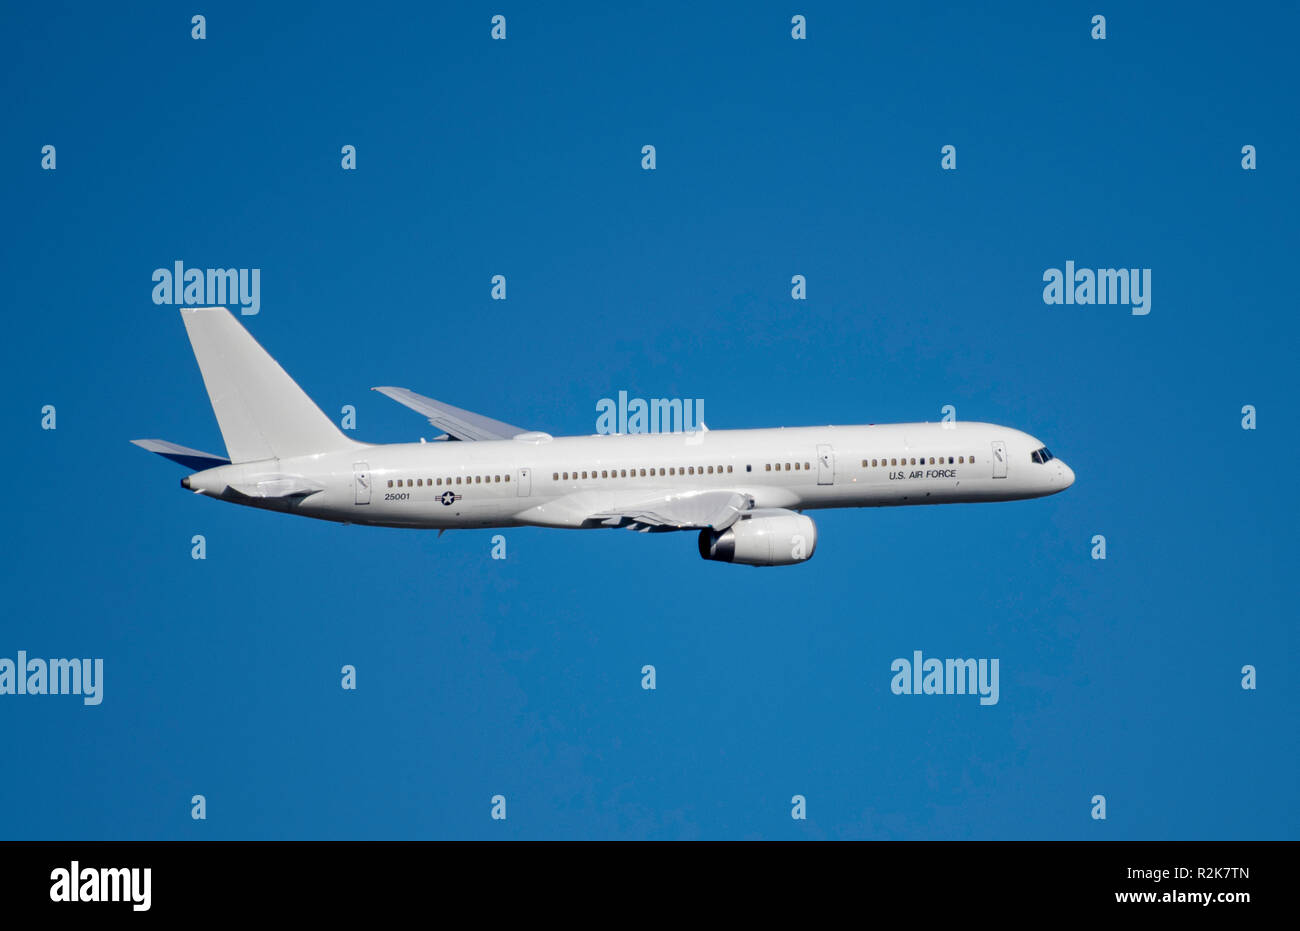 BOSSIER CITY, lA., U.S.A., - NOV. 14, 2018: A Boeing 757 aircraft converted to military use, but having a conspicuous absence of tail number designati - Stock Image